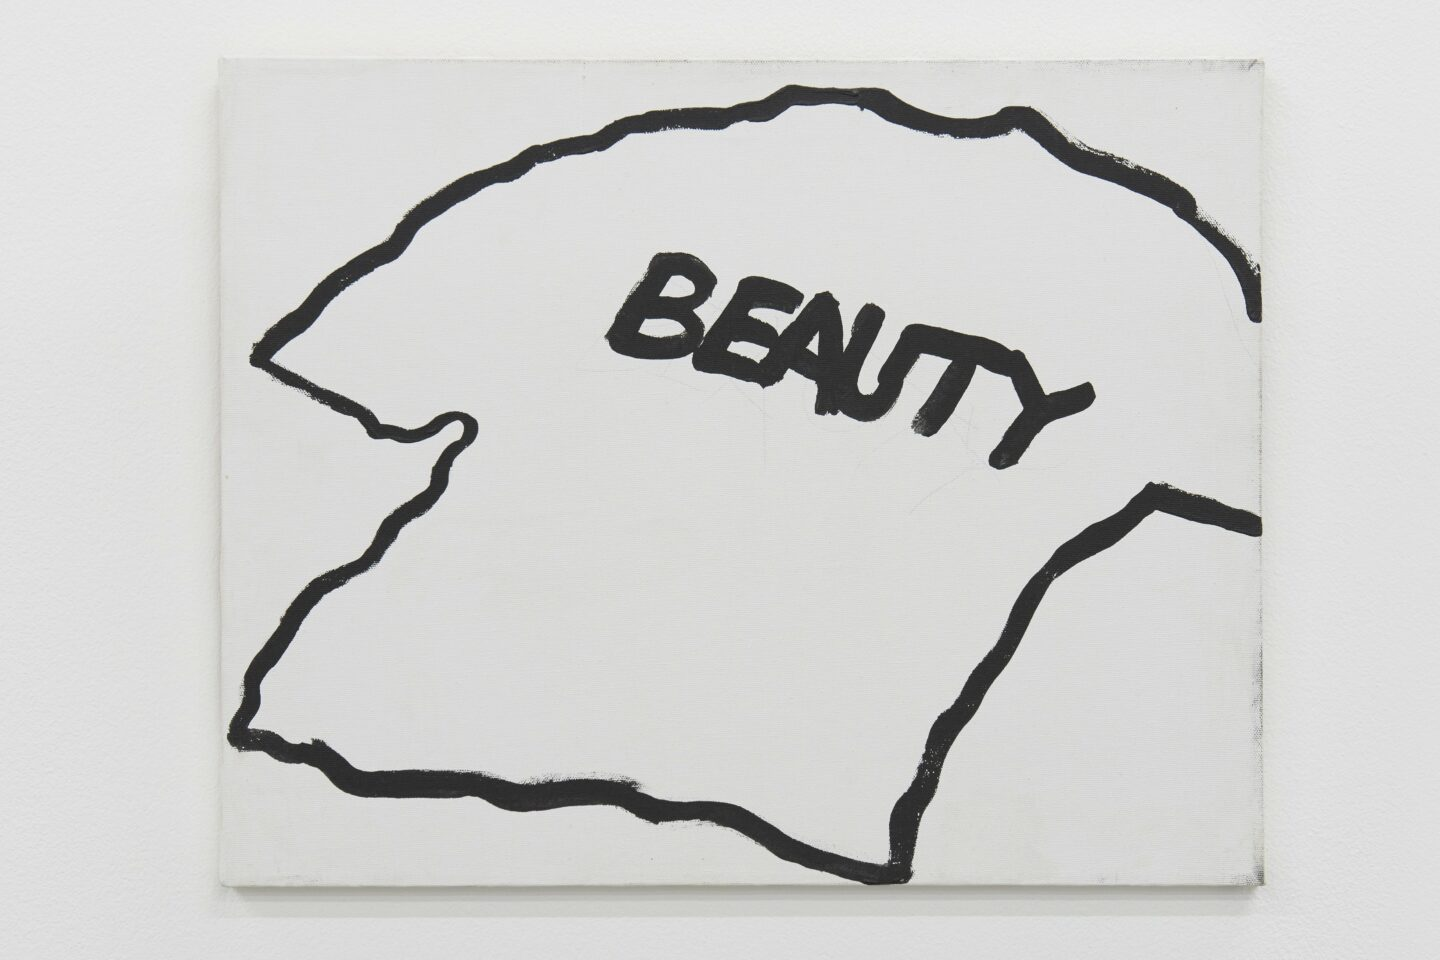 Exhibition View Gene Beery Retrospective «view on Beauty, c. 2000» at Fri-Art Kunsthale, Fribourg / Photo: Guillaume Baeriswyl / Courtesy: the artist and Greenspon, New York